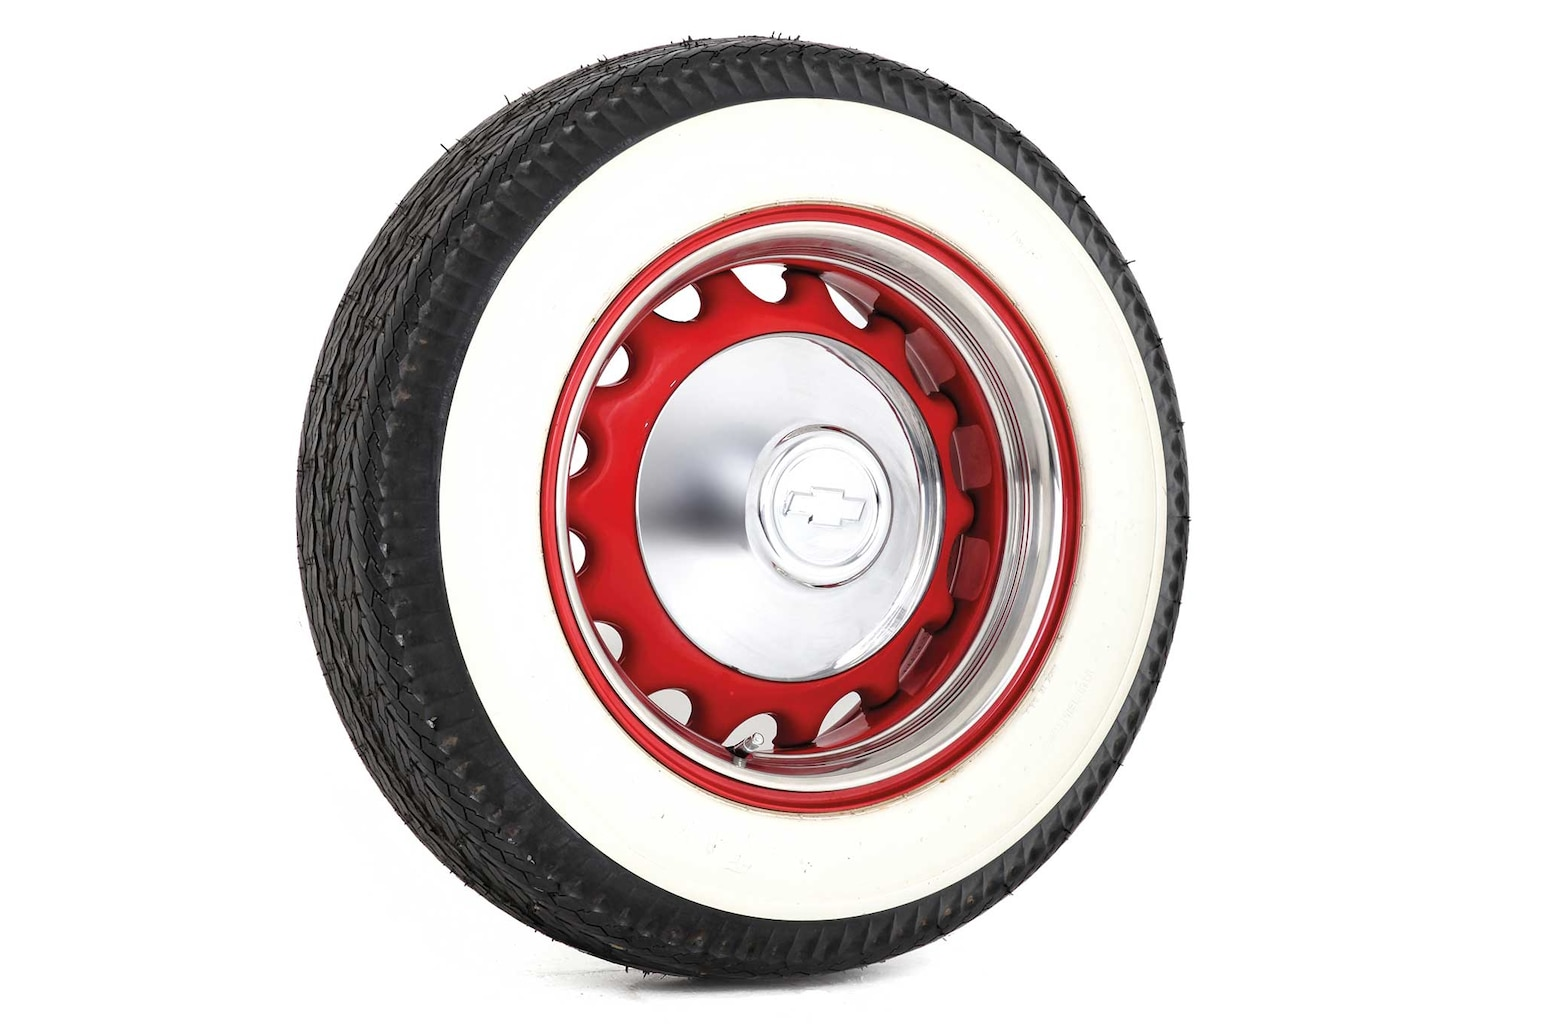 coker tires firestone deluxe champion bias ply whitewall 003